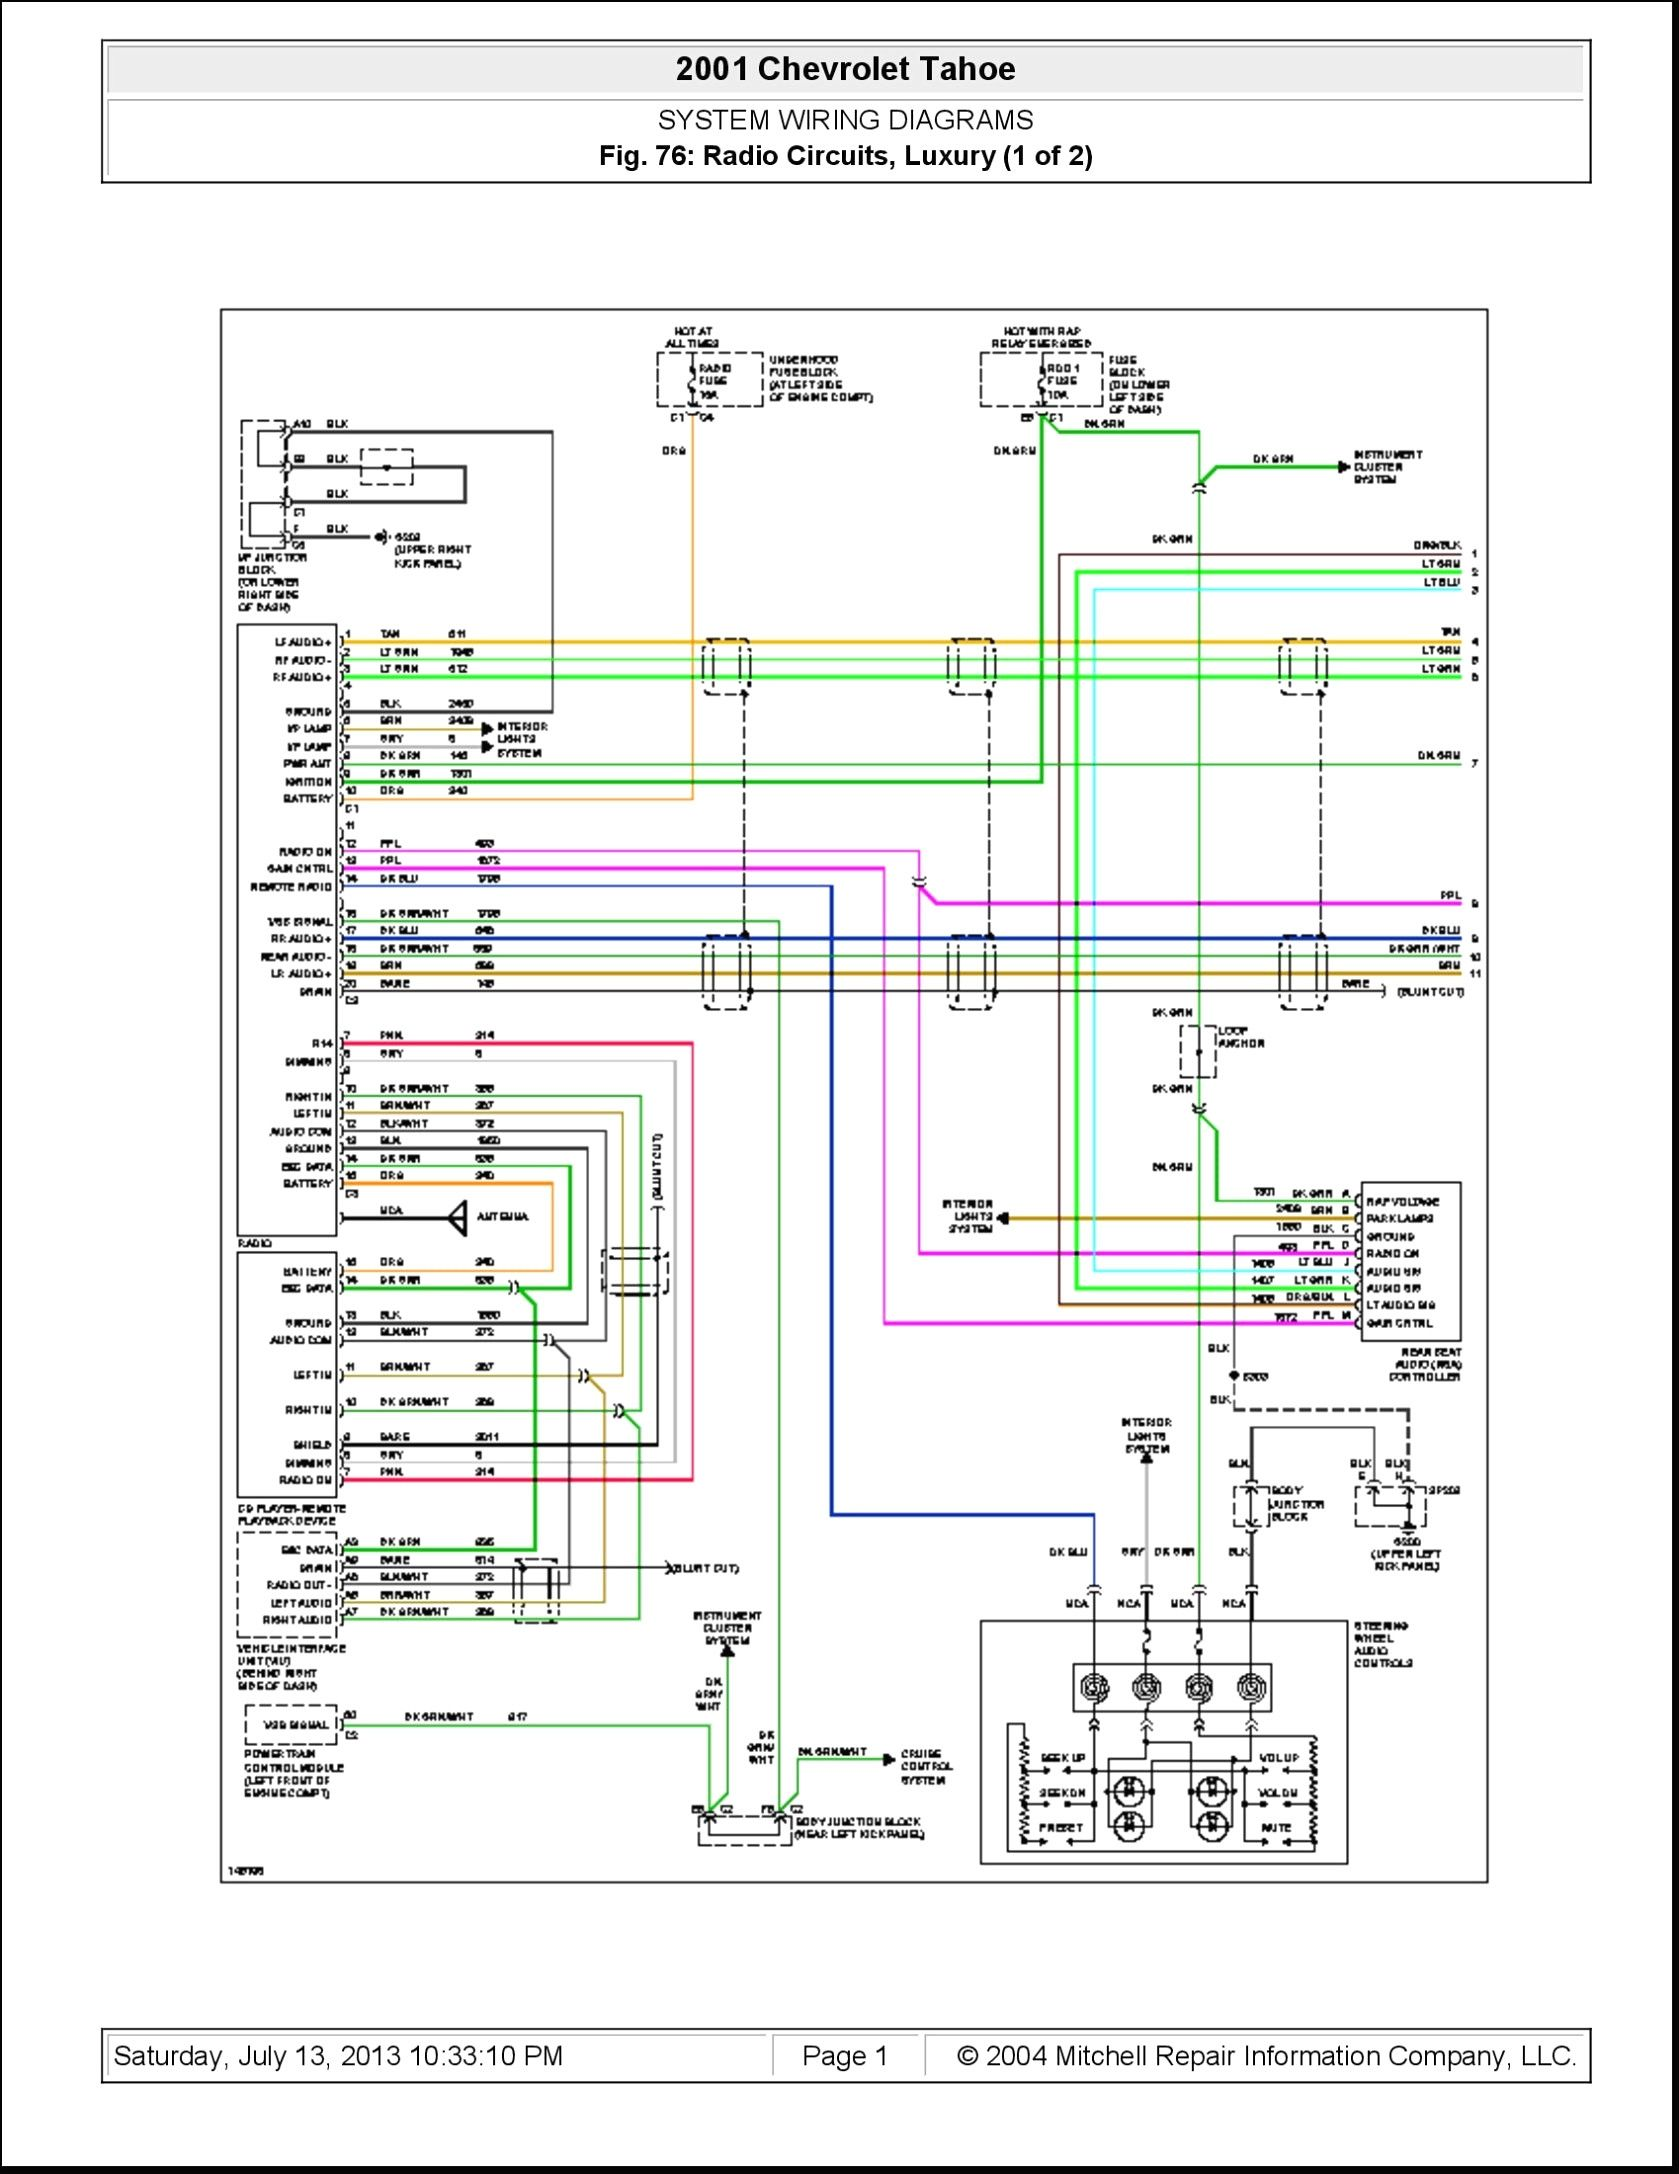 2006 chevrolet malibu wiring diagram - fusebox and wiring diagram  layout-court - layout-court.haskee.it  diagram database - haskee.